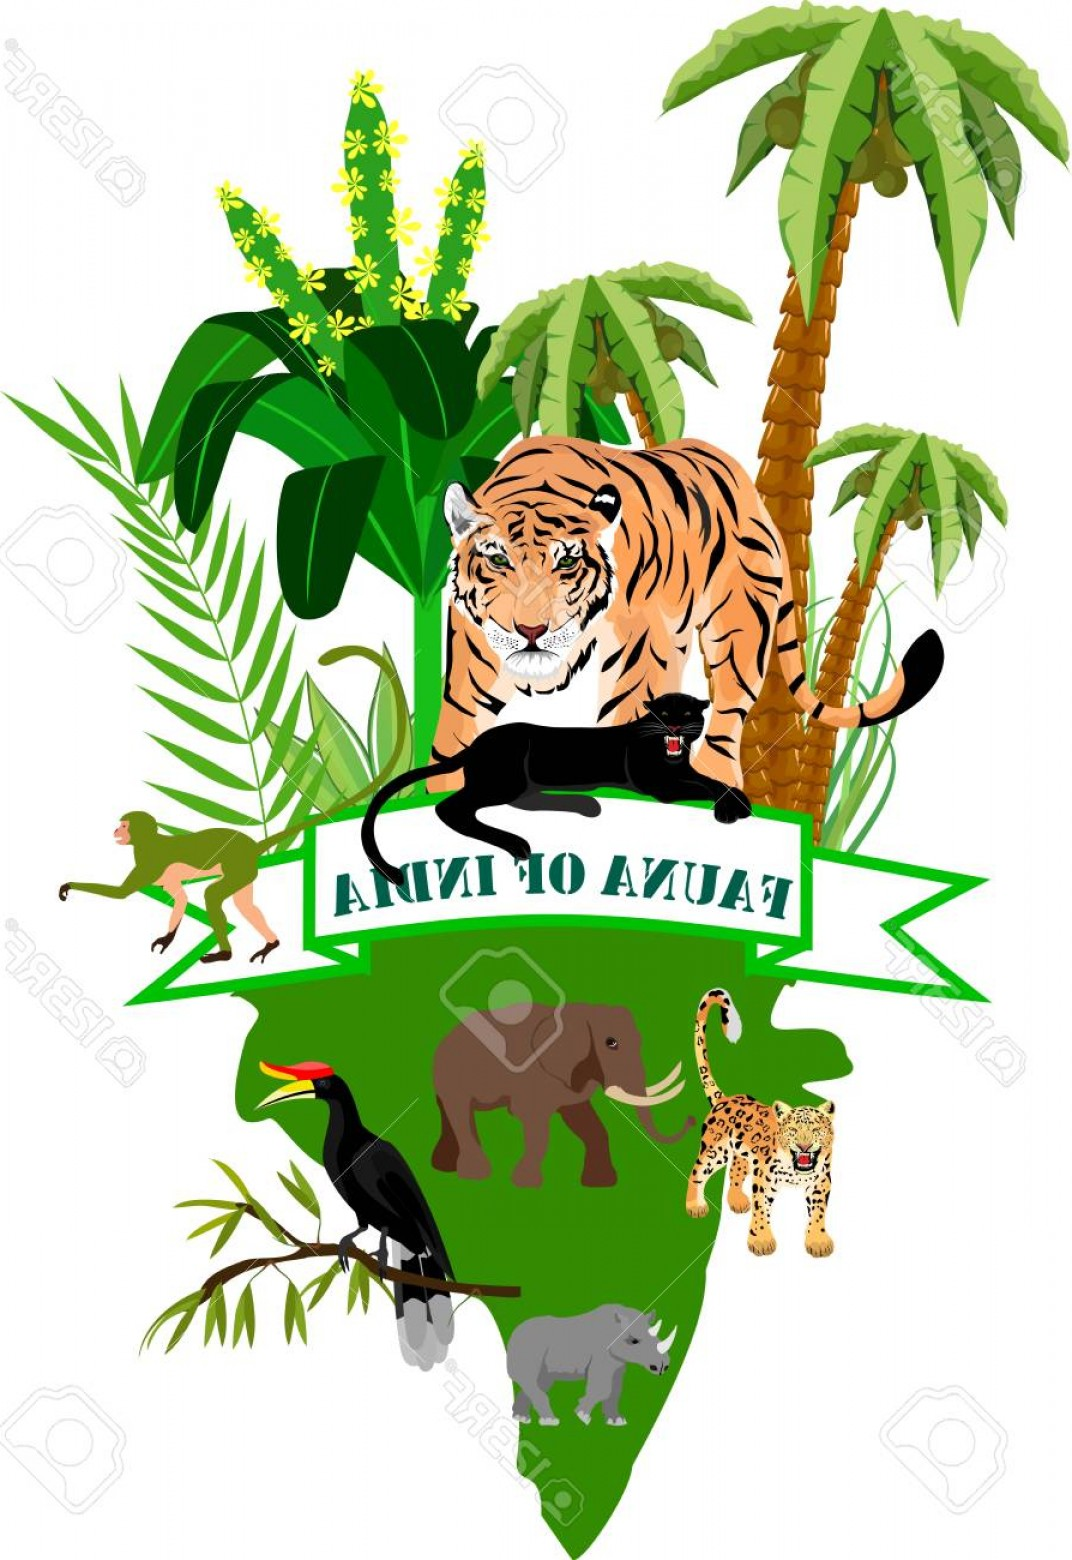 Green Tiger Vector: Photostock Vector India S Nature Concept Illustration Tiger And Other Animals Symbolizing Wildlife Of India Vector